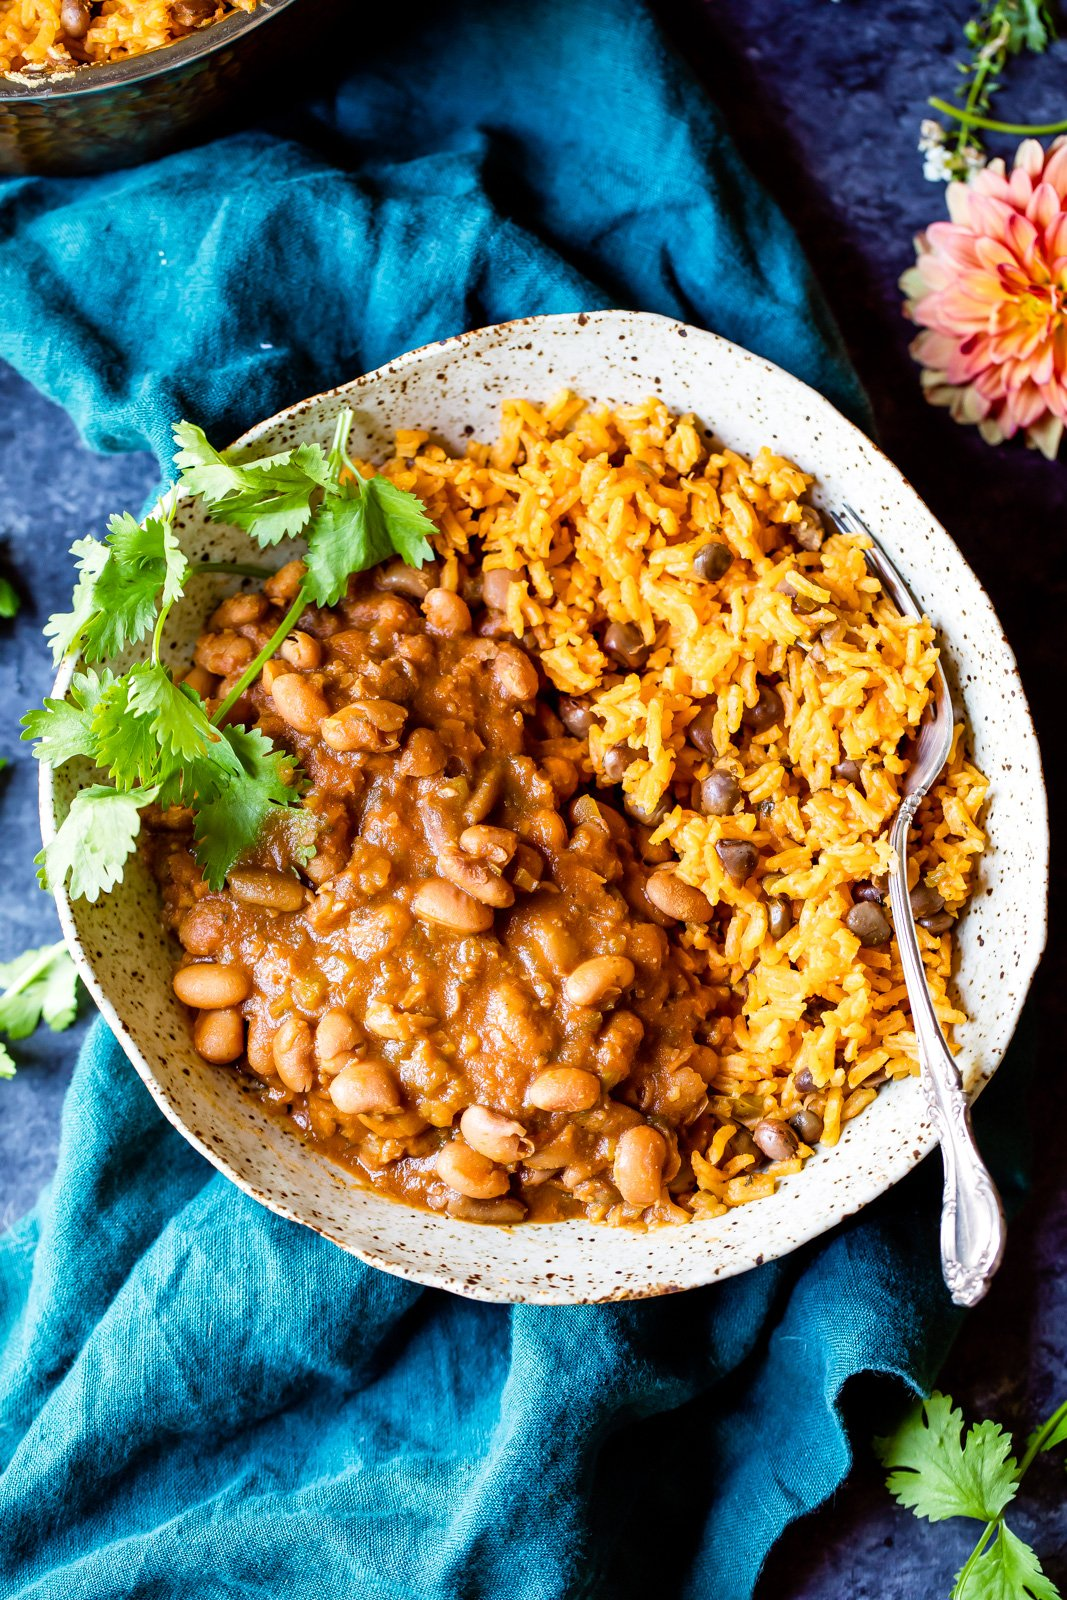 Video moms authentic puerto rican rice and beans ambitious kitchen moms authentic puerto rican rice and beans with savory homemade sofrito and sazon you forumfinder